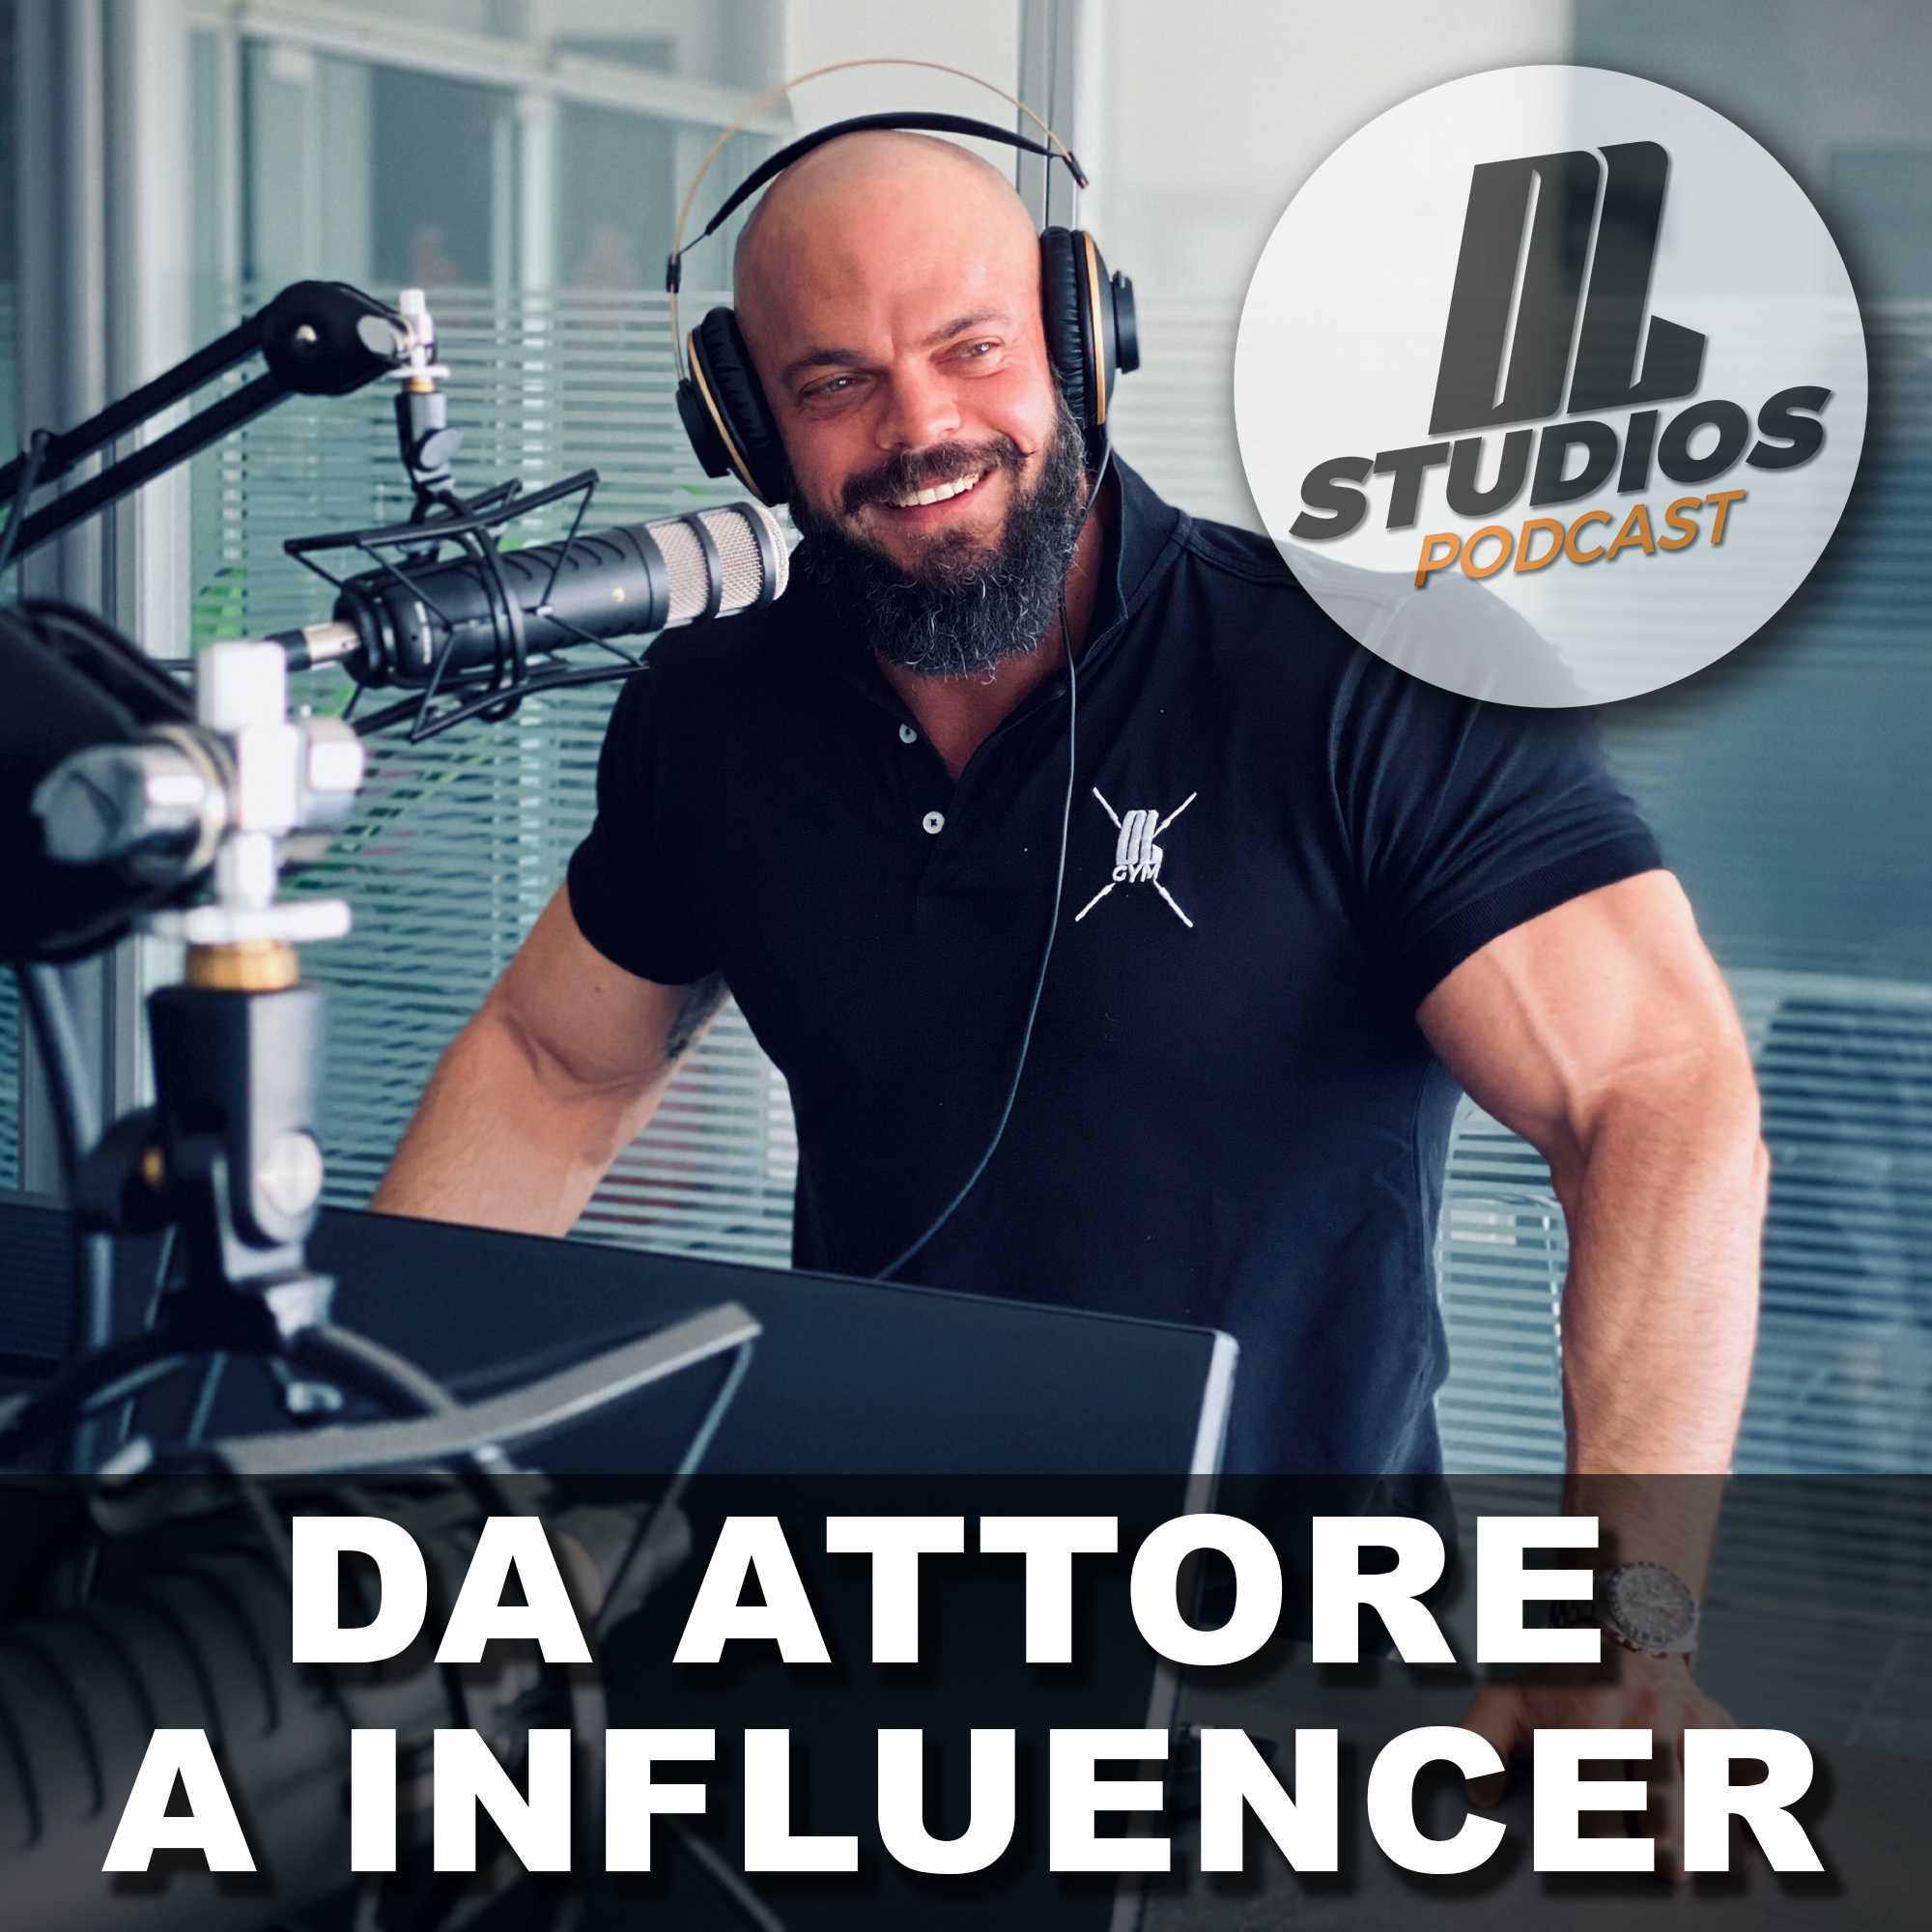 CANAL al DL Podcast